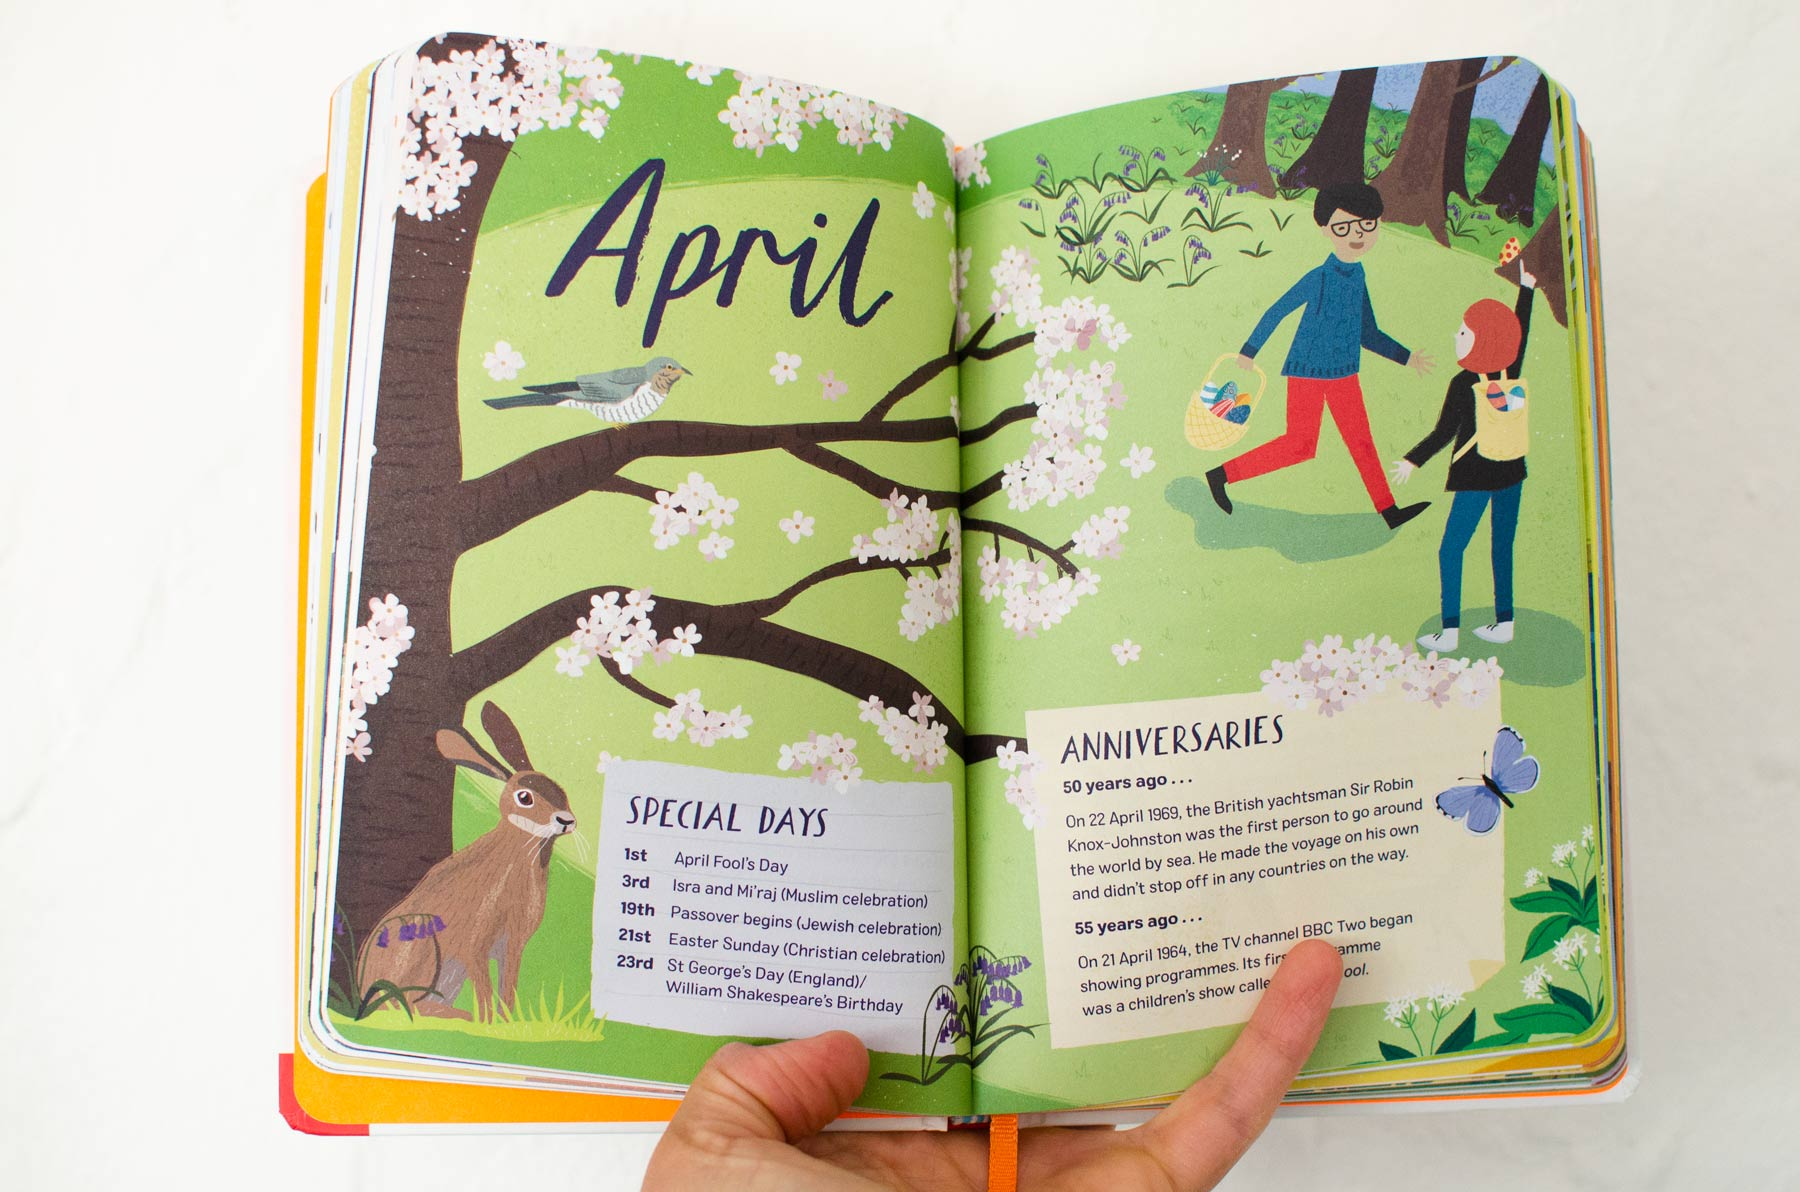 April Final Illustration from 2019: Nature Month by Month by Elly Jahnz